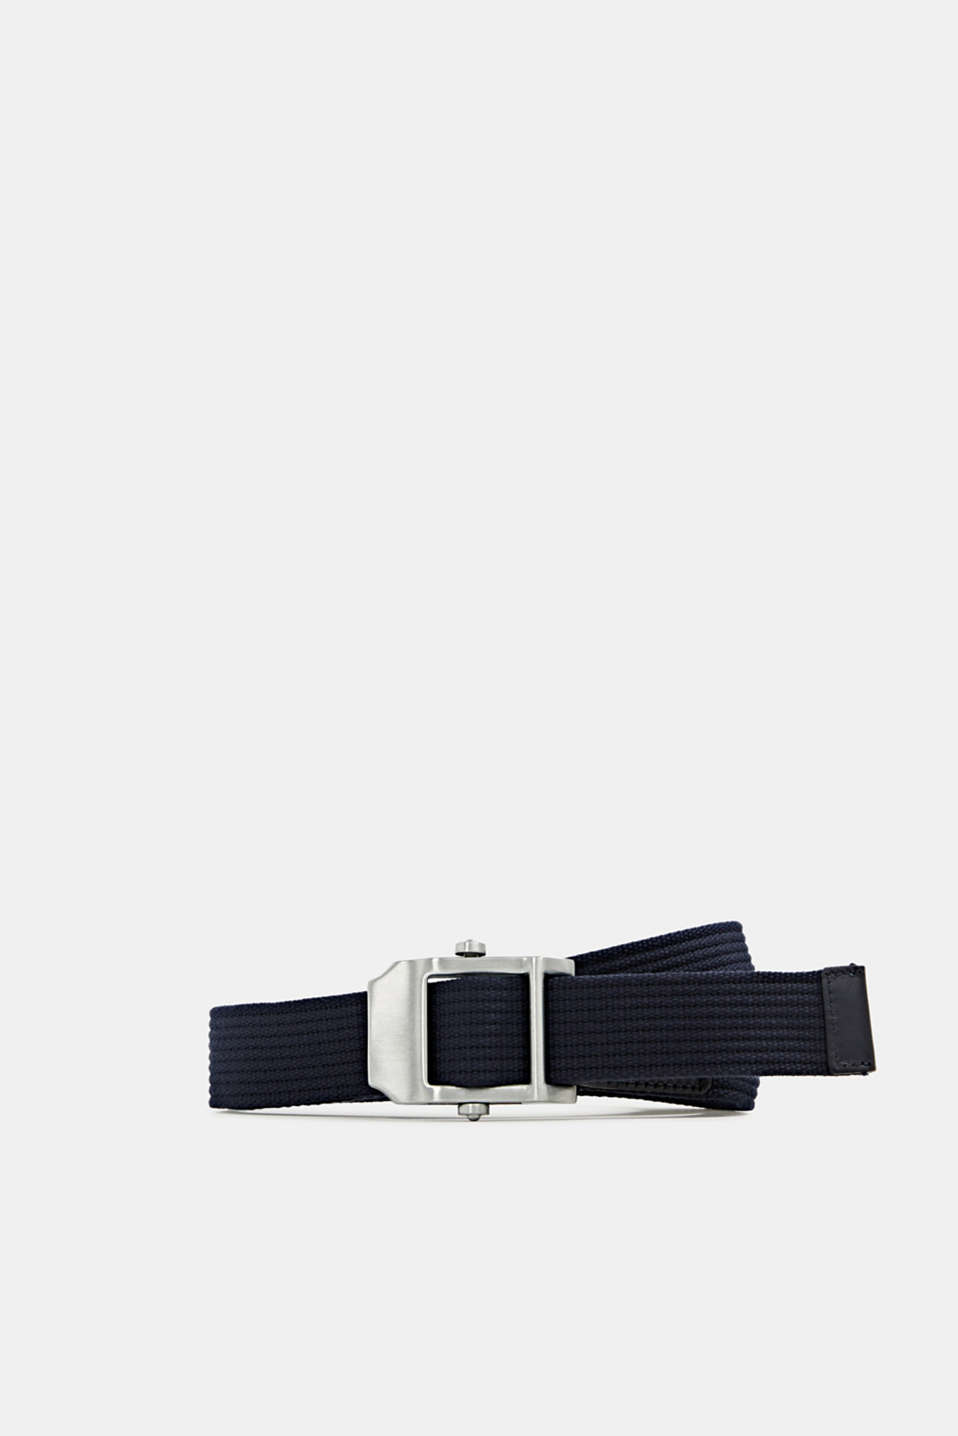 Woven belt with a modern metal buckle, NAVY, detail image number 0